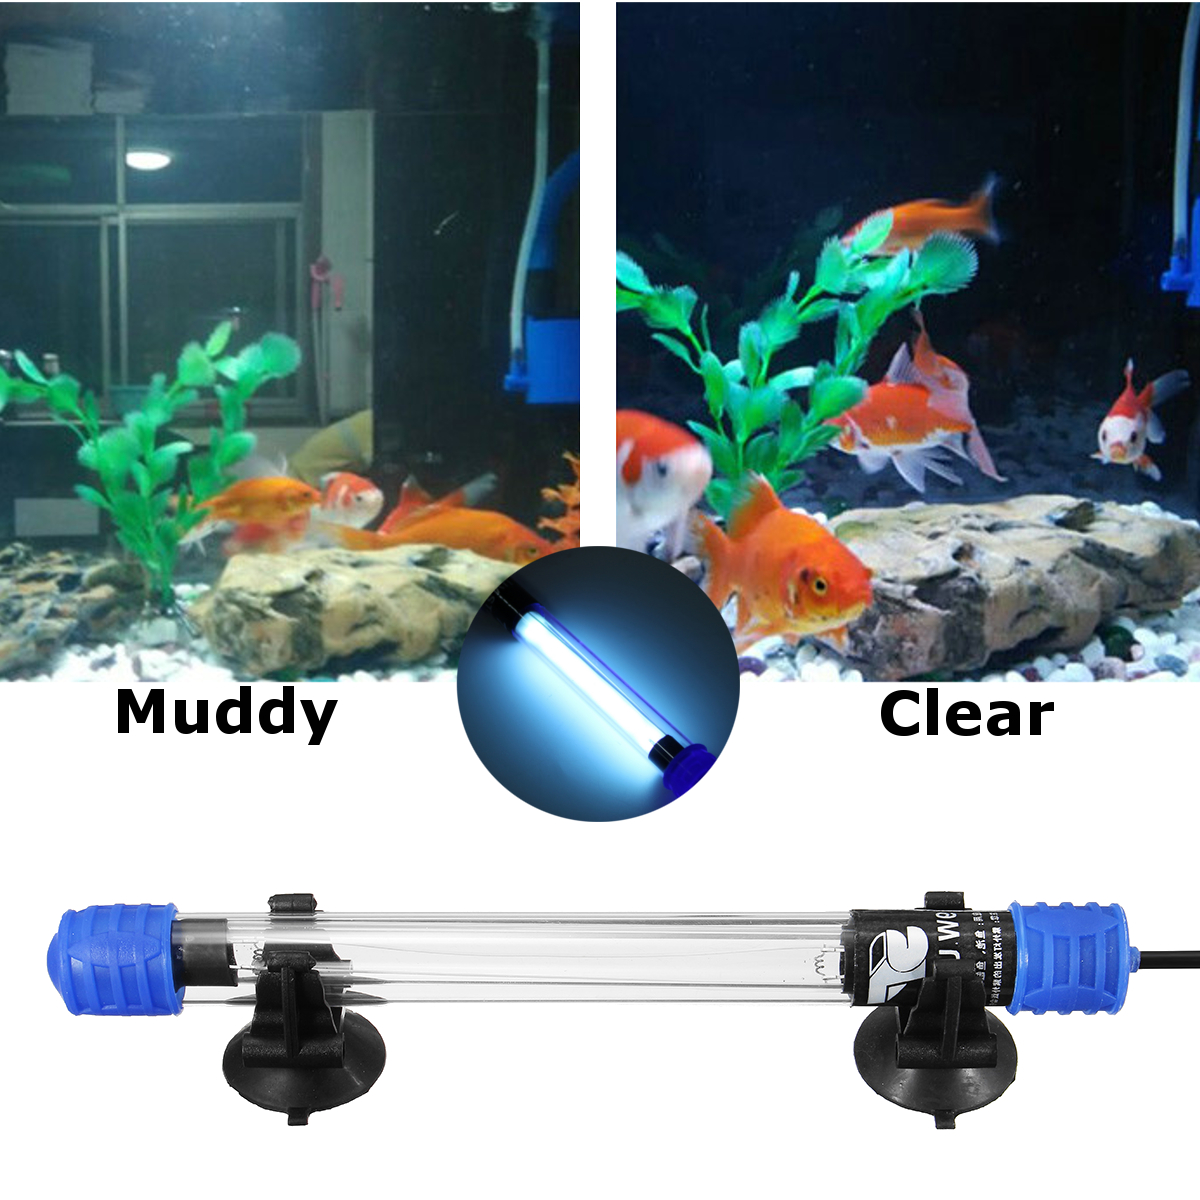 9W/11W Submersible UV Sterilizer Aquarium Fish Tank Pond Light Water Disinfection Treatment